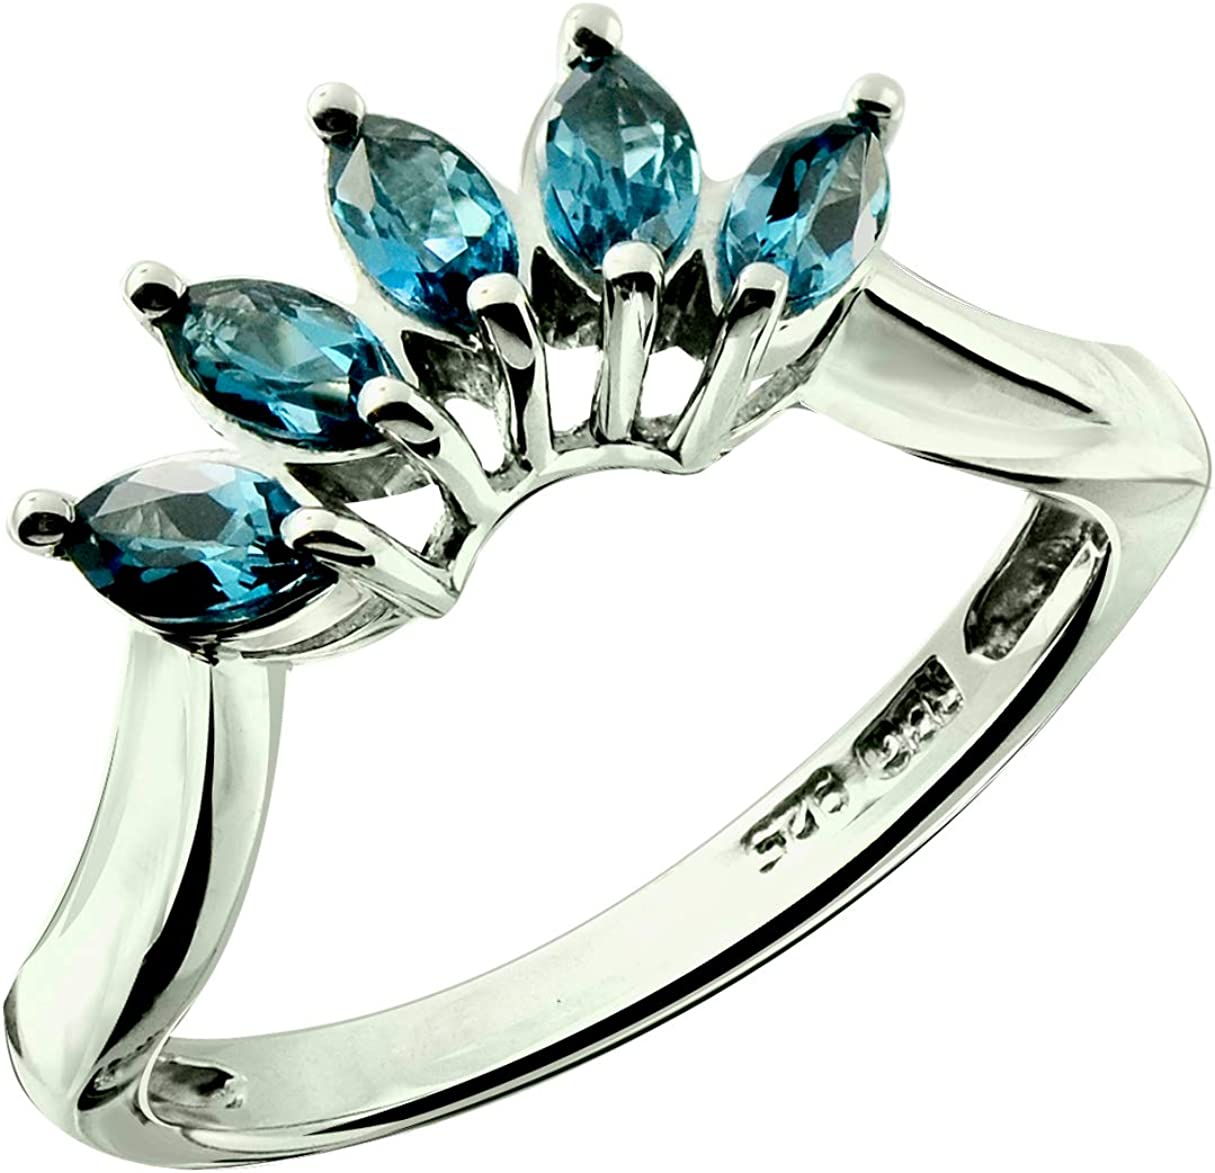 RB Now free shipping Gems Sterling Silver 925 Ring Marquise R 0.8 GEMS Genuine Outlet sale feature Cts